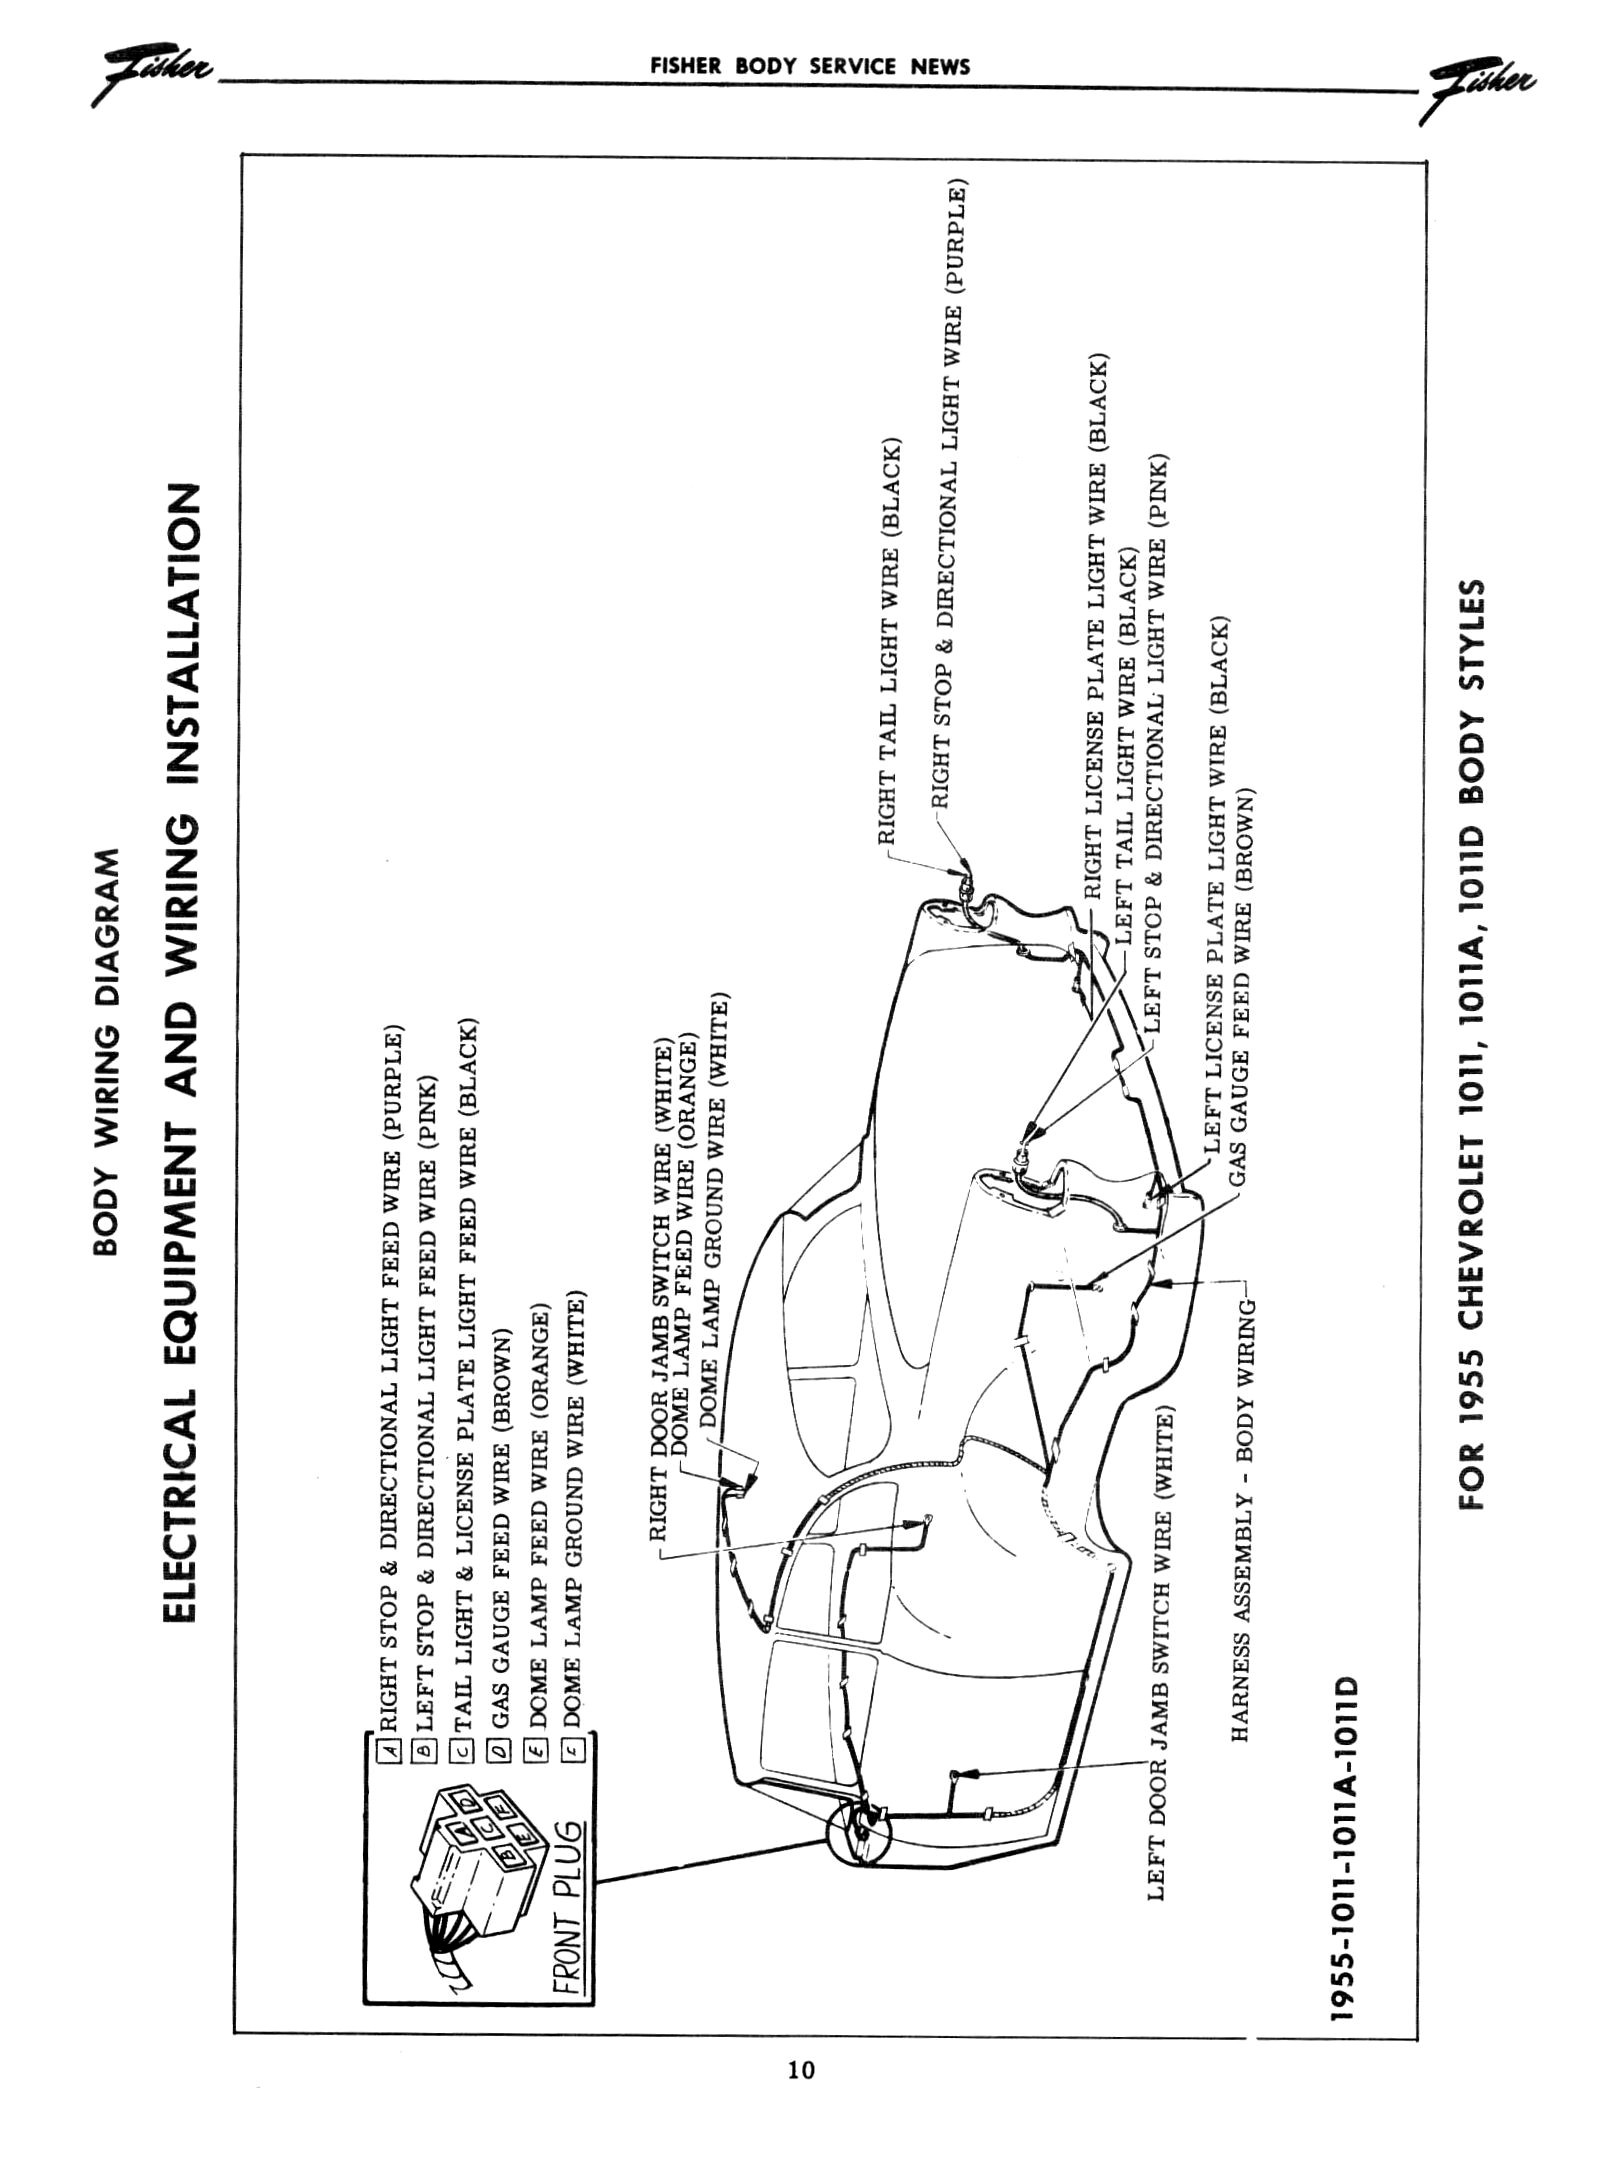 Tail Light Wiring Diagram Chevy 1976 : 36 Wiring Diagram